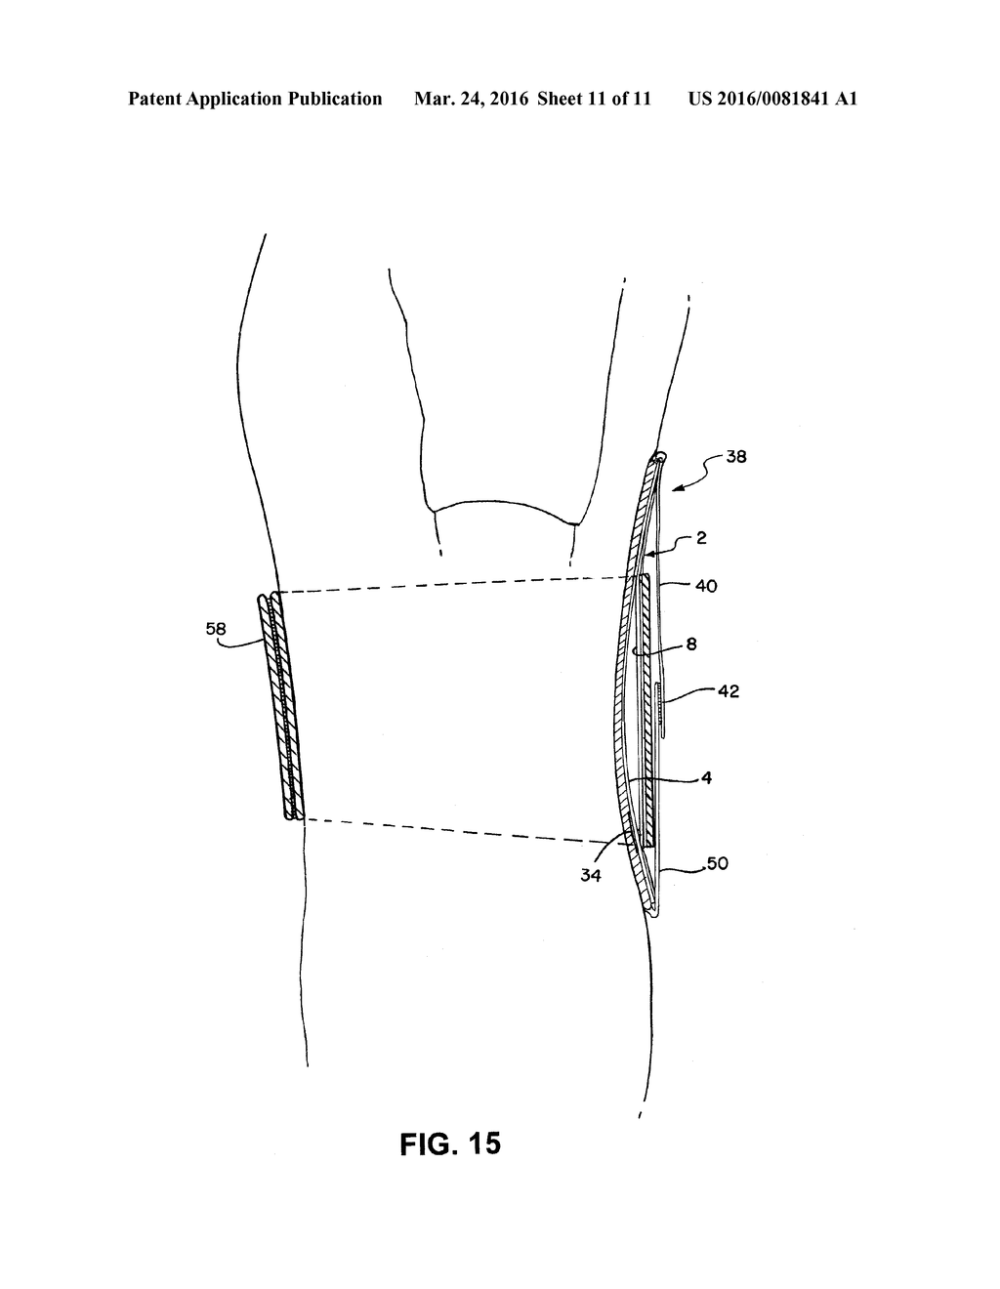 medium resolution of adjustable lordosis orthopedic insert for a back brace diagram schematic and image 12